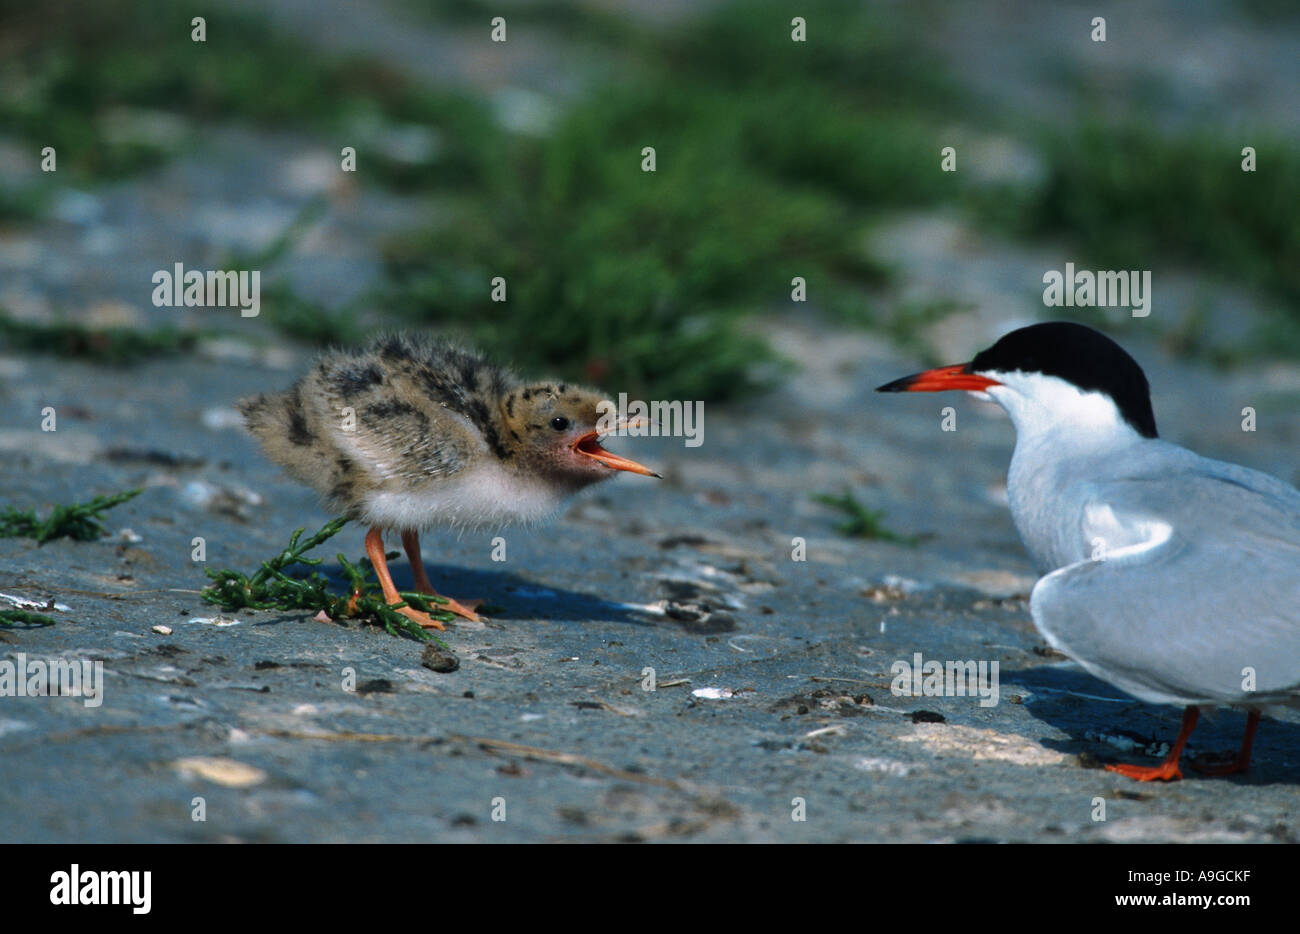 common tern (Sterna hirundo), chicken begging for feed, Netherlands, Texel - Stock Image